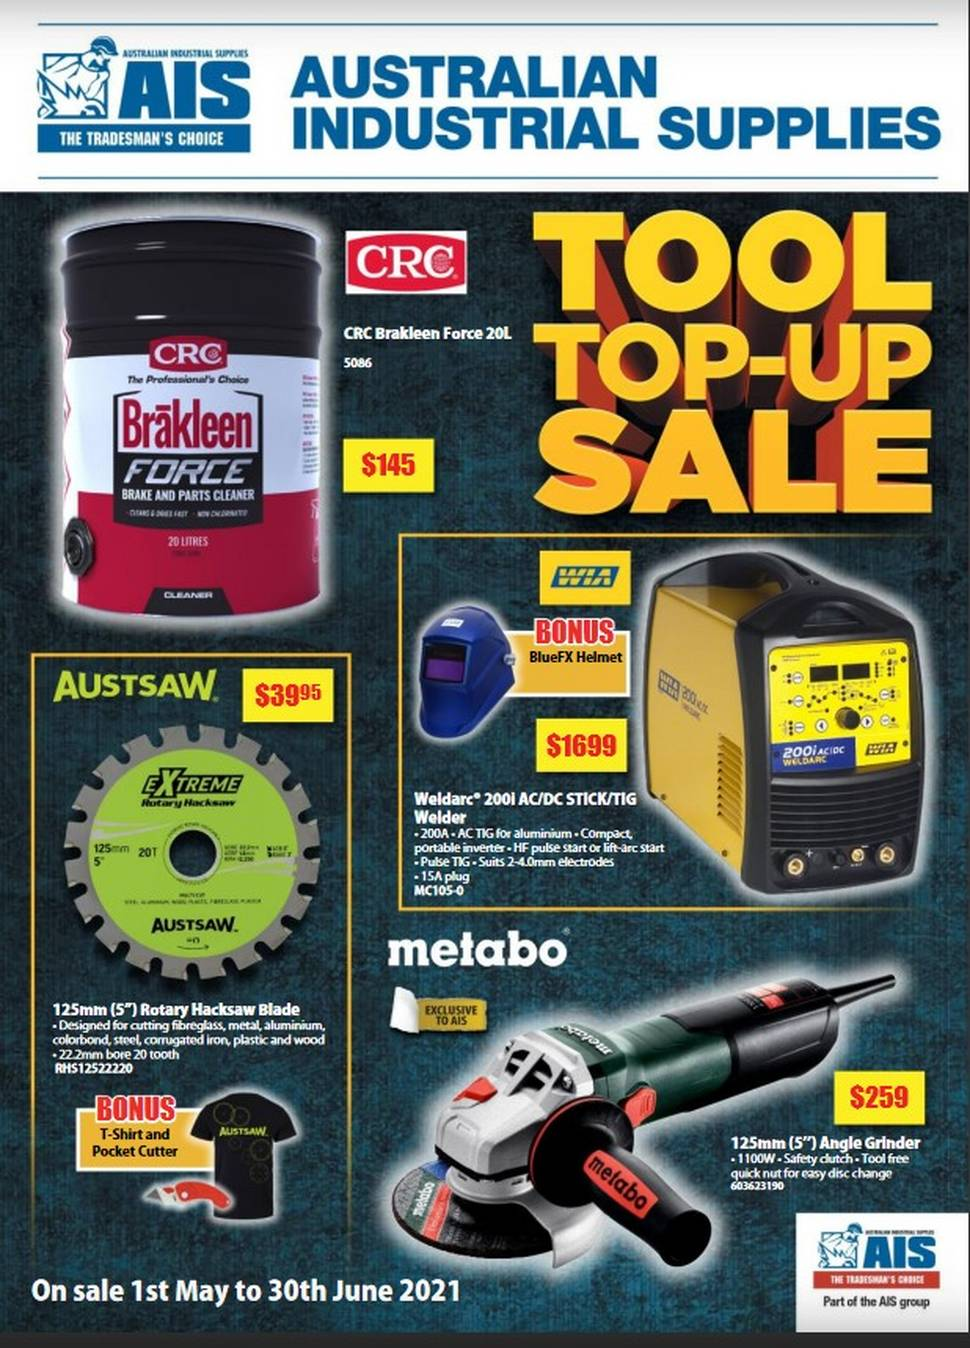 The AIS Summer Tools Catalogue is now available to download at swti.com.au